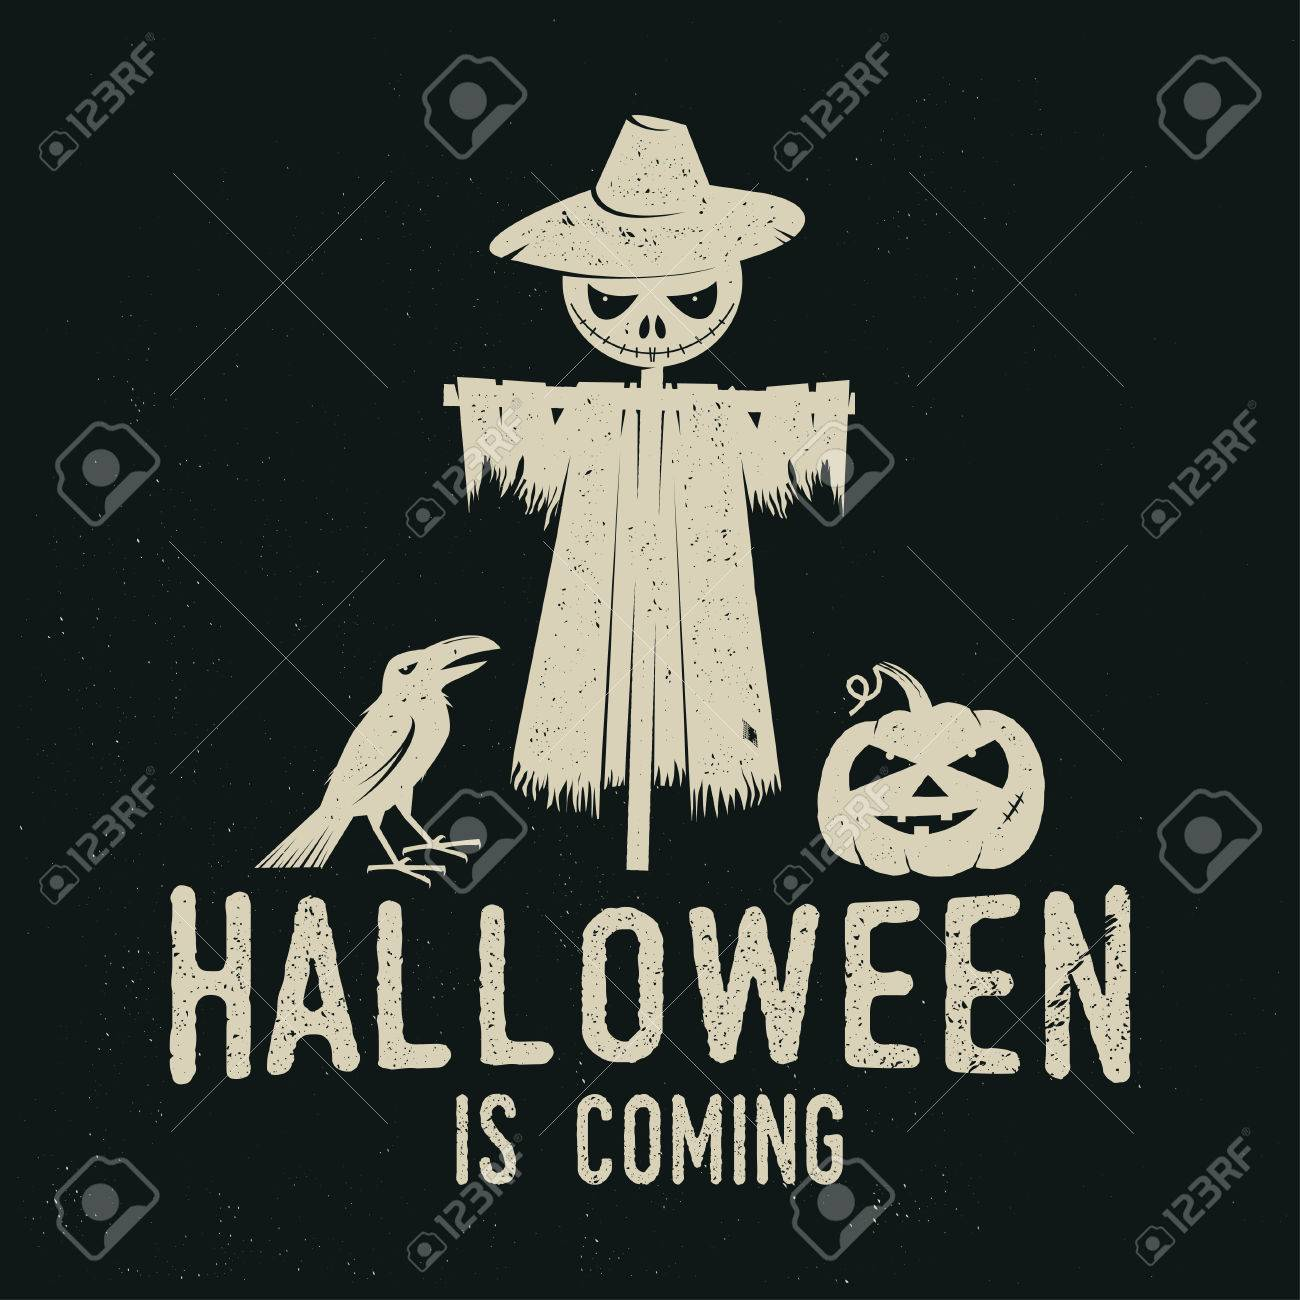 Halloween Is Coming Concept. Vector Illustration. Royalty Free ...